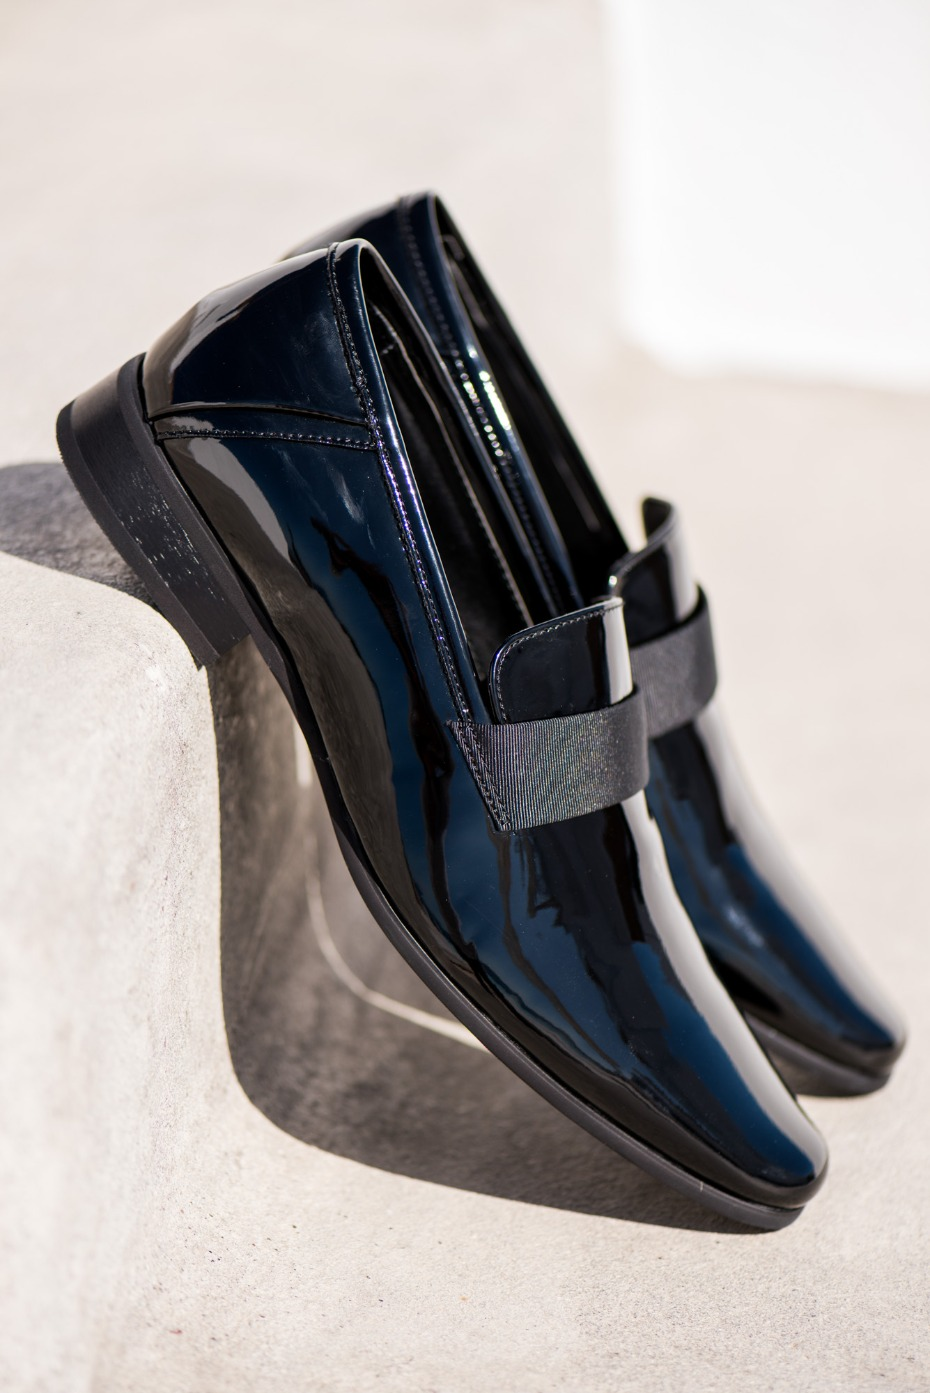 black patent leather shoes from the groom